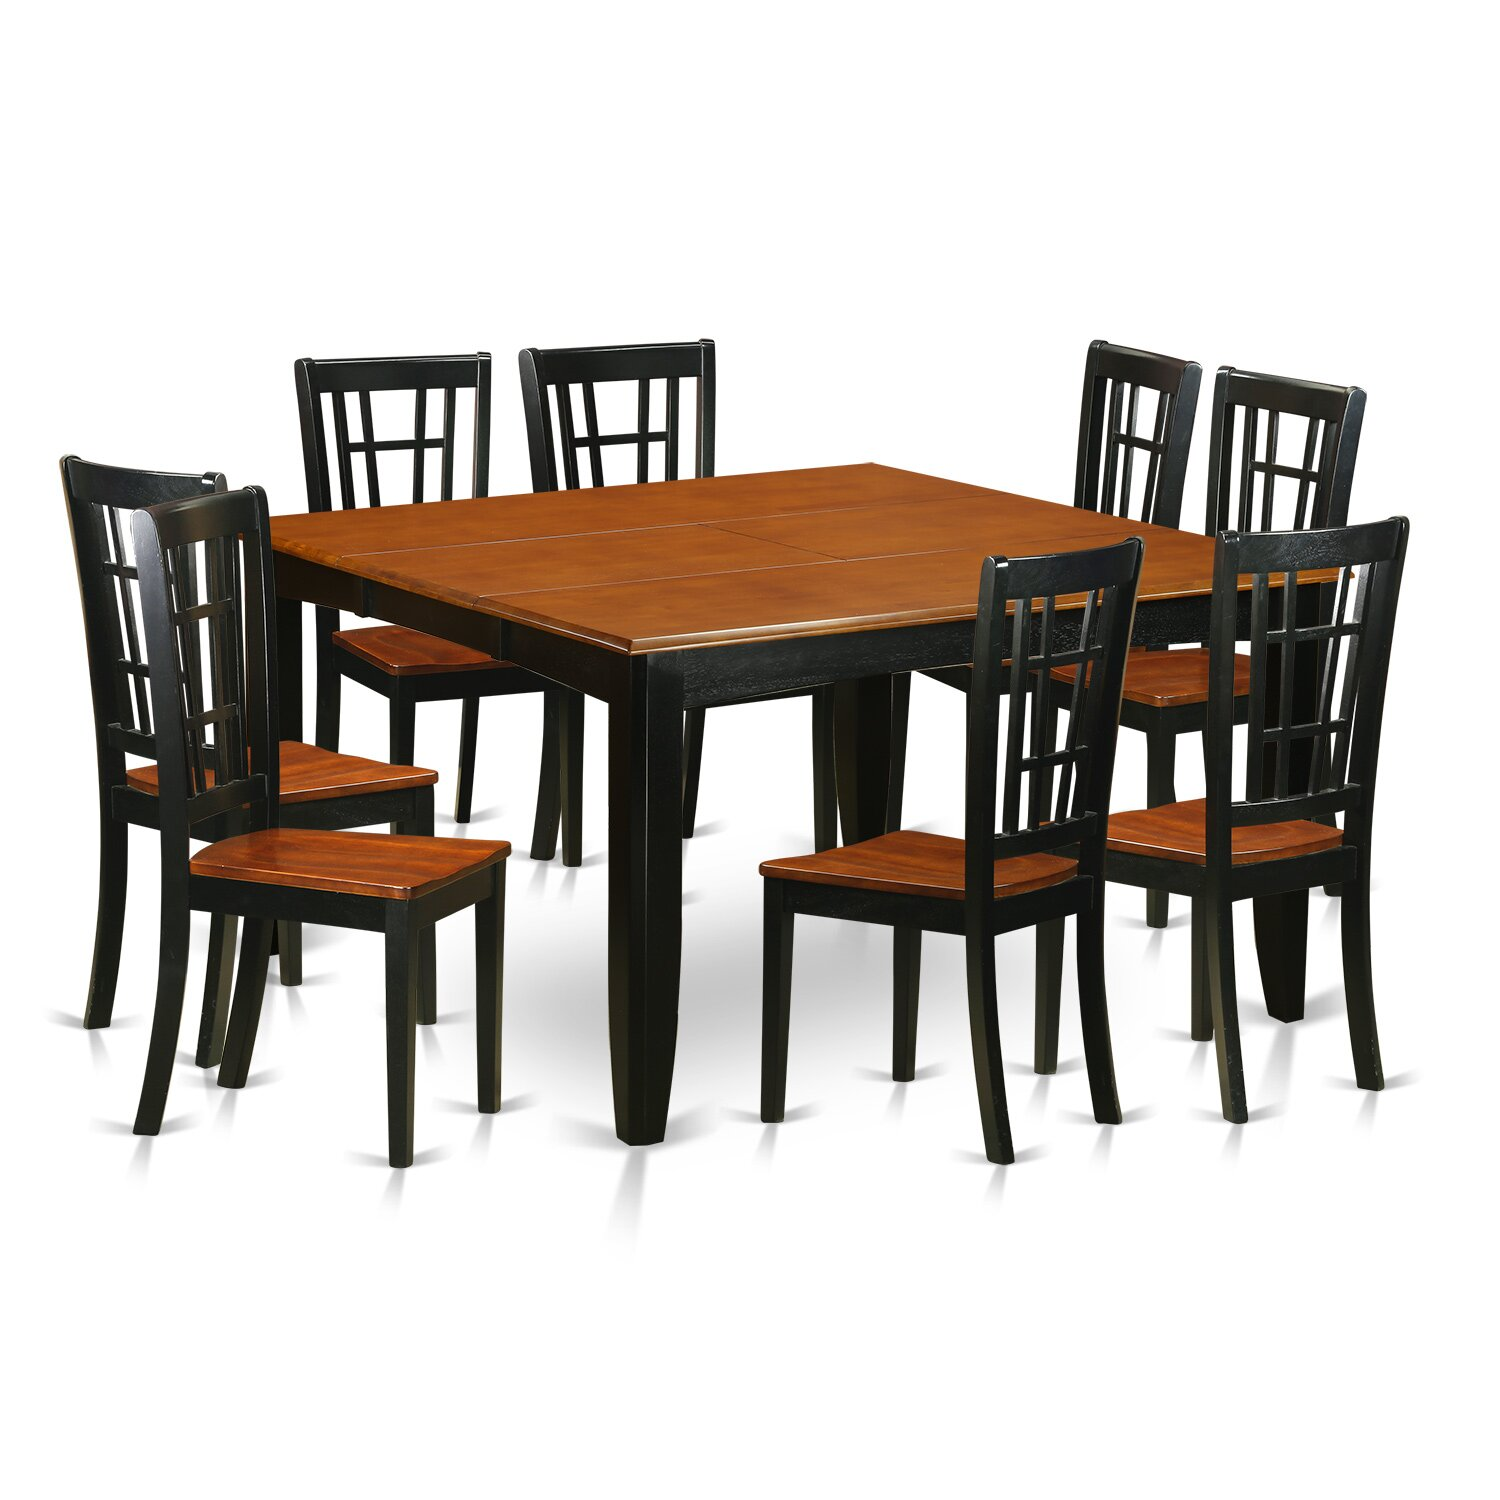 East west parfait 9 piece dining set wayfair for Dining room tables 1940s